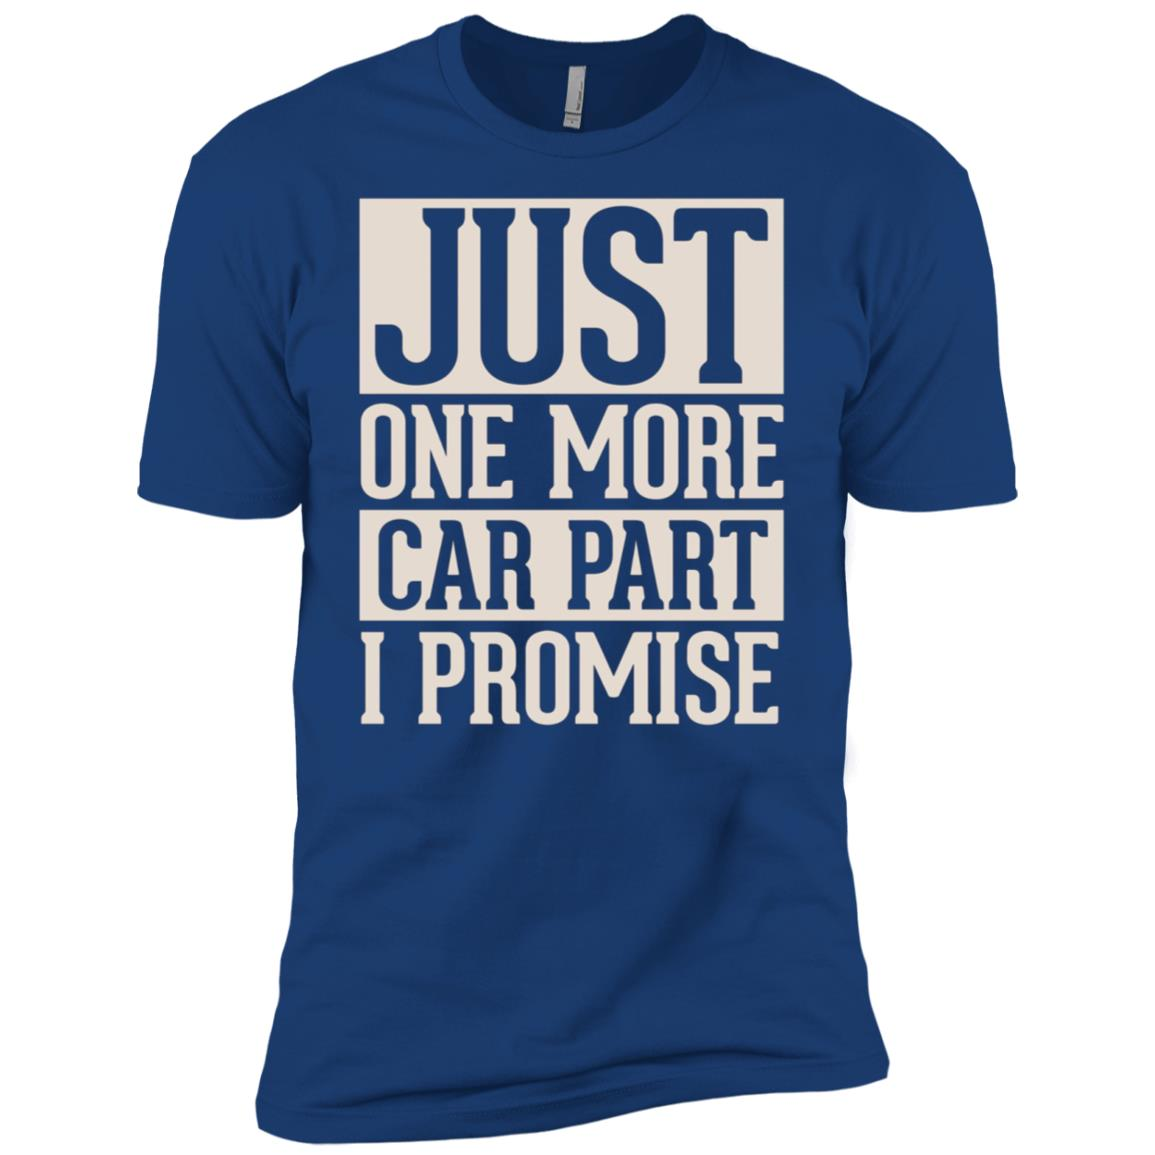 Just One More Car Part I Promise – Funny Car Enthusiast Tee Men Short Sleeve T-Shirt